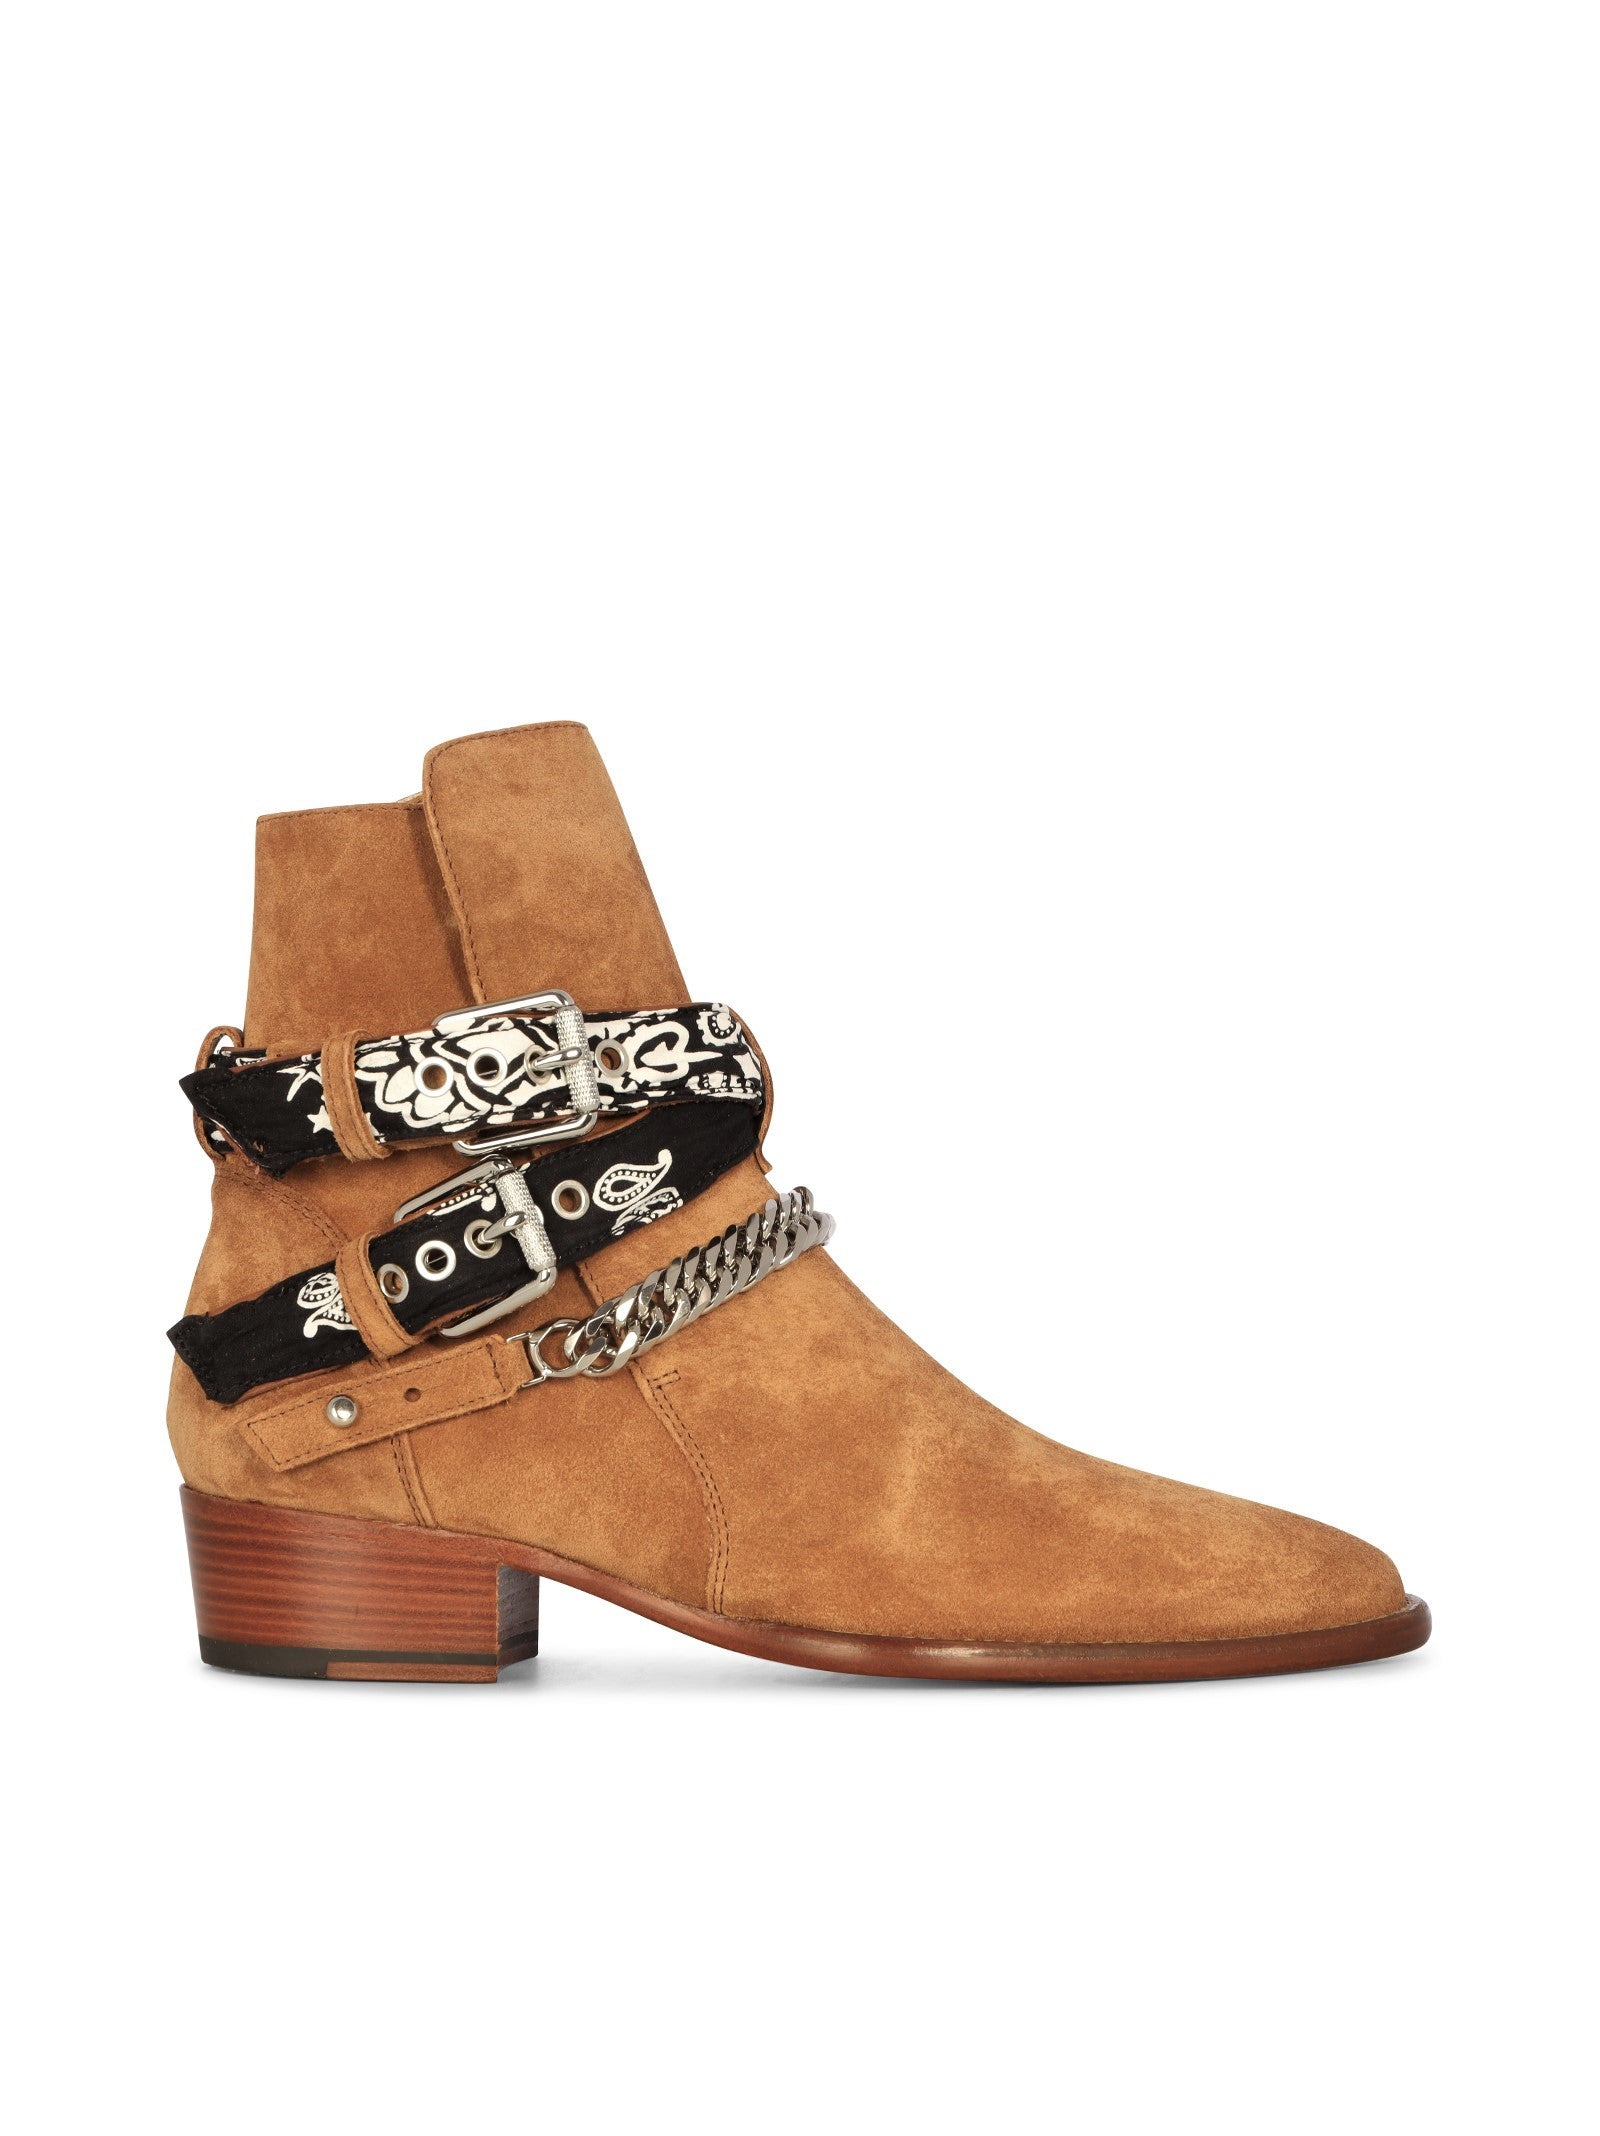 buckle-fastening leather boots